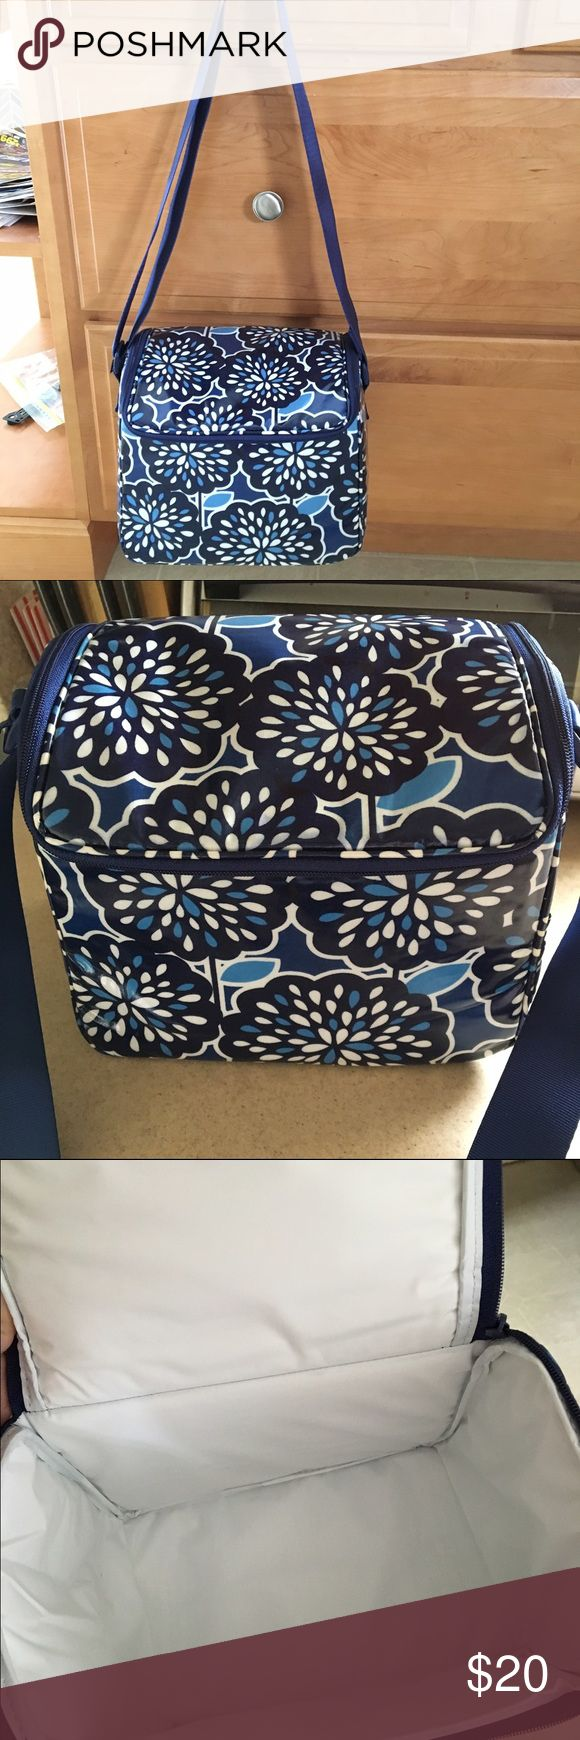 Vera Bradley lunch box Beautiful pattern lunch bag. Insulated and durable. Vera Bradley Bags